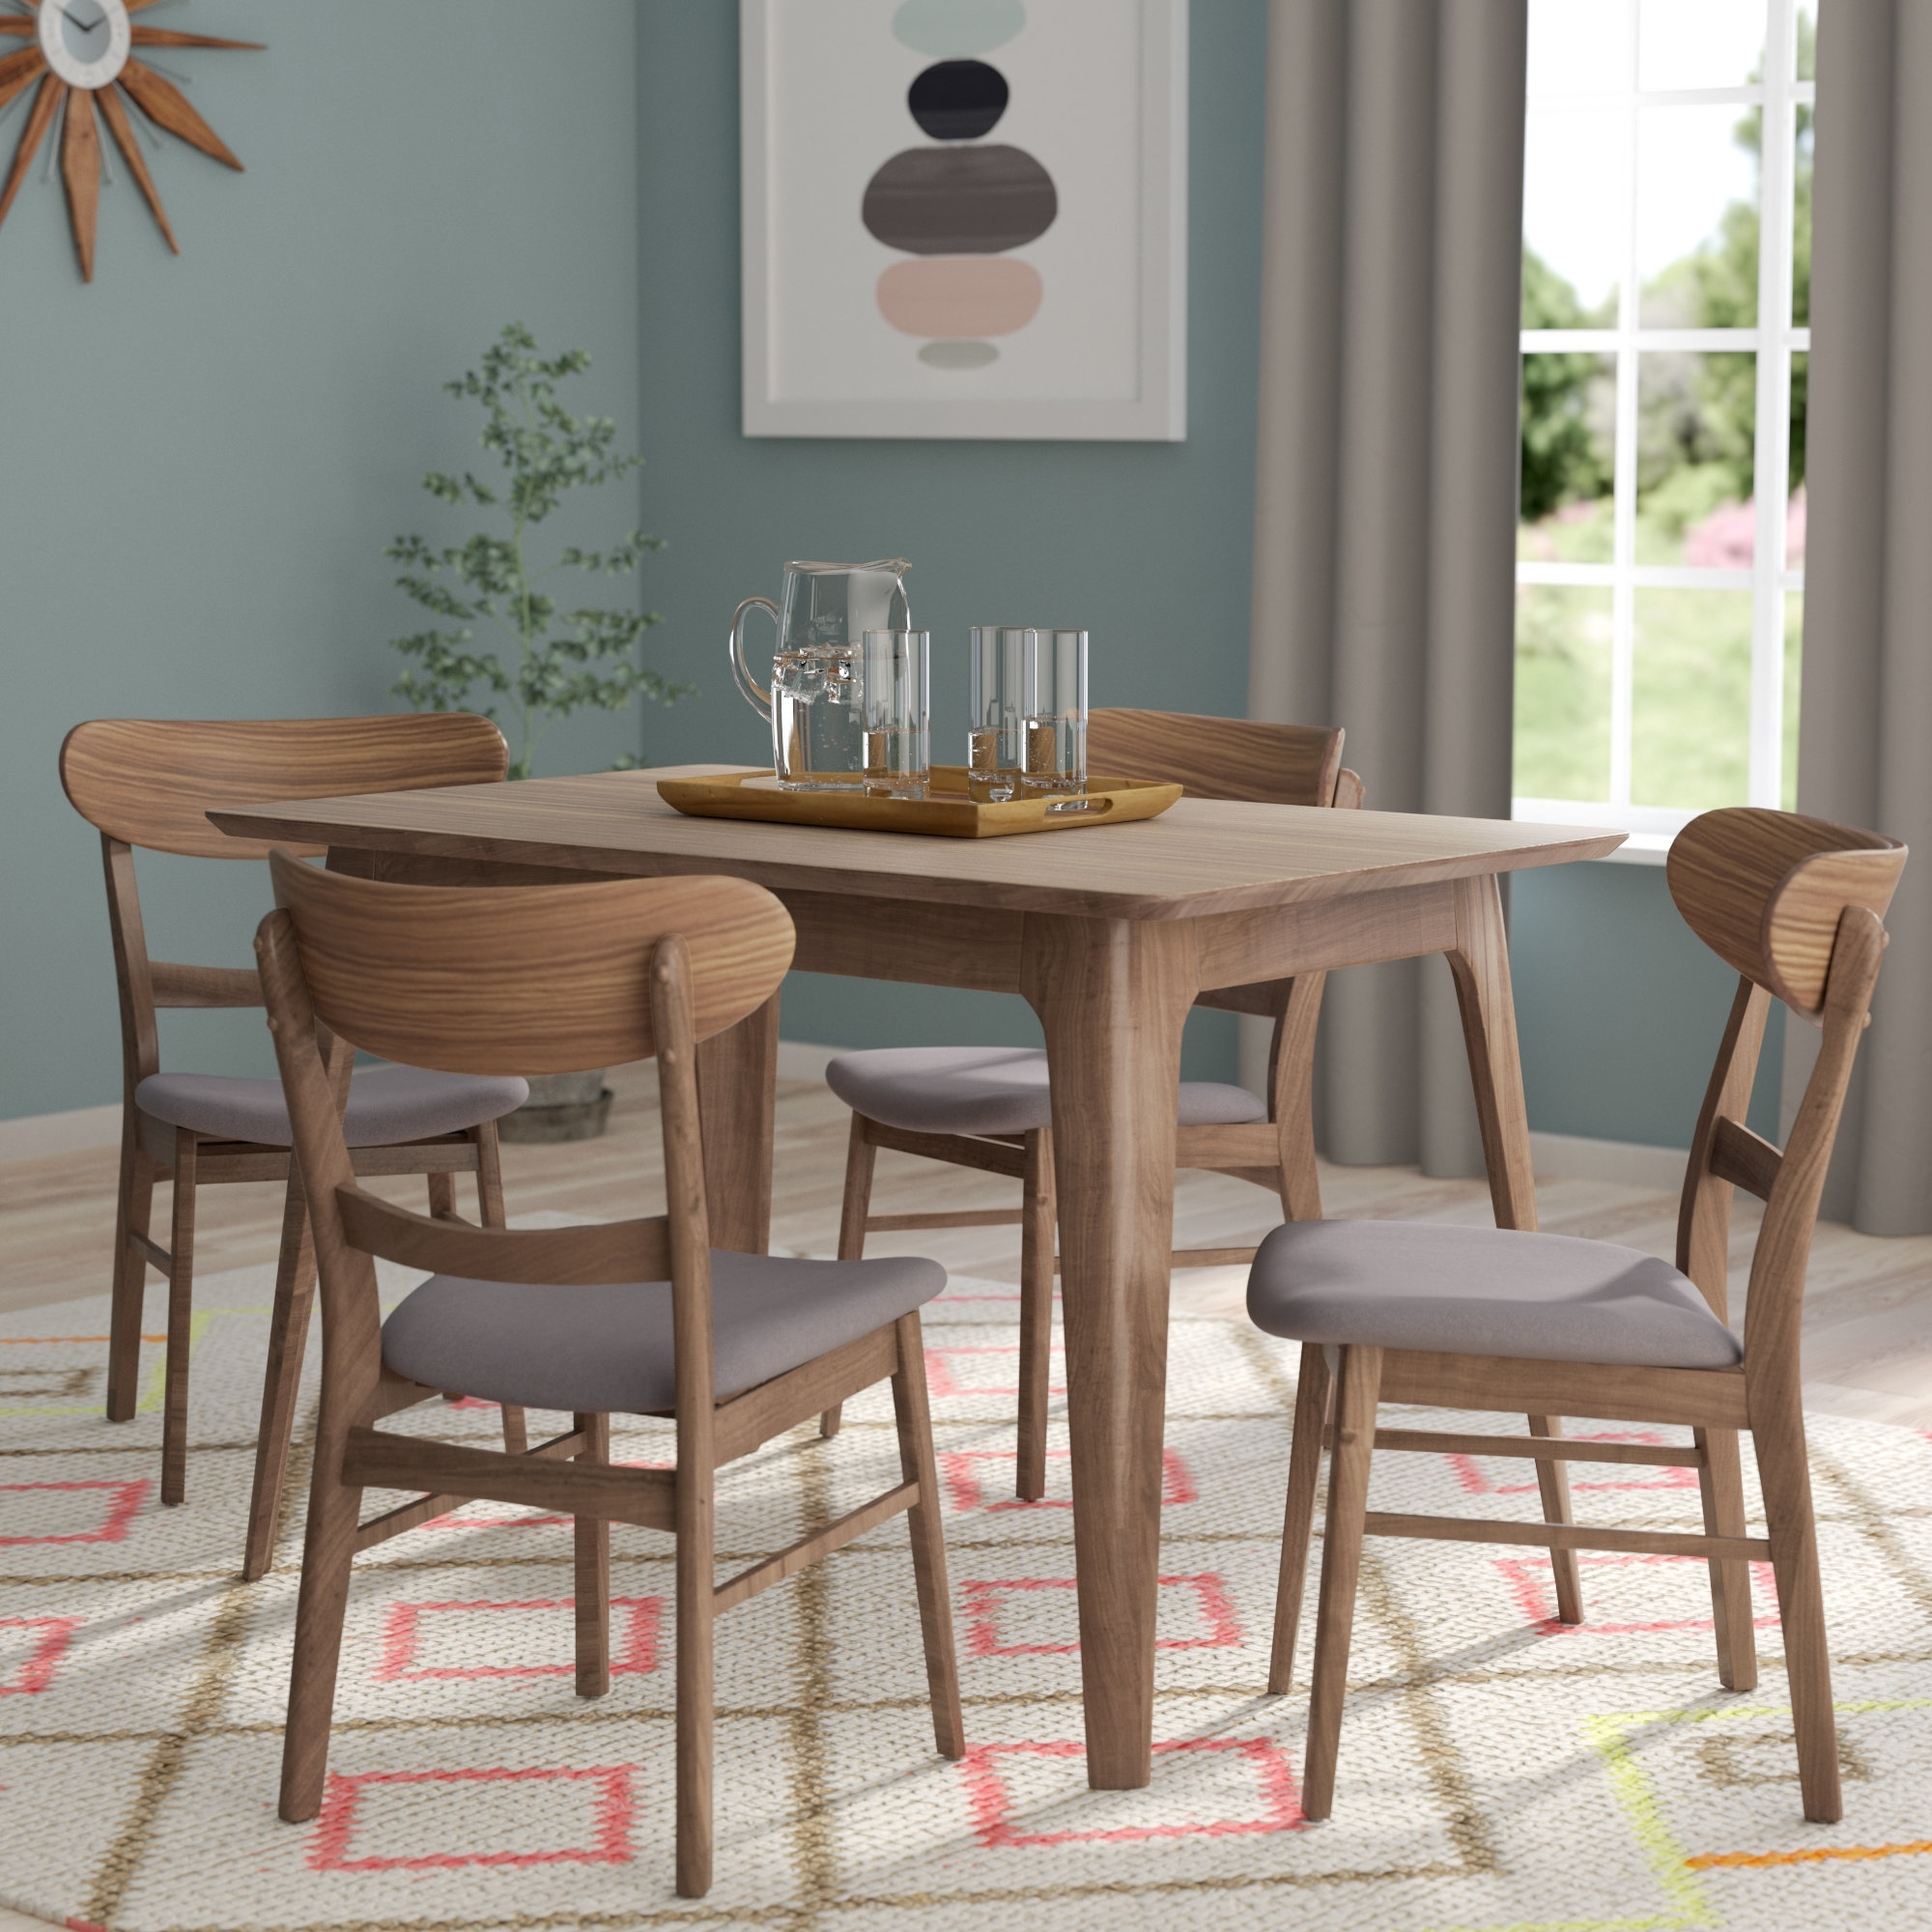 Craftsman 5 Piece Round Dining Sets With Uph Side Chairs With Regard To Best And Newest Langley Street Yolanda 5 Piece Wood Dining Set & Reviews (View 2 of 25)